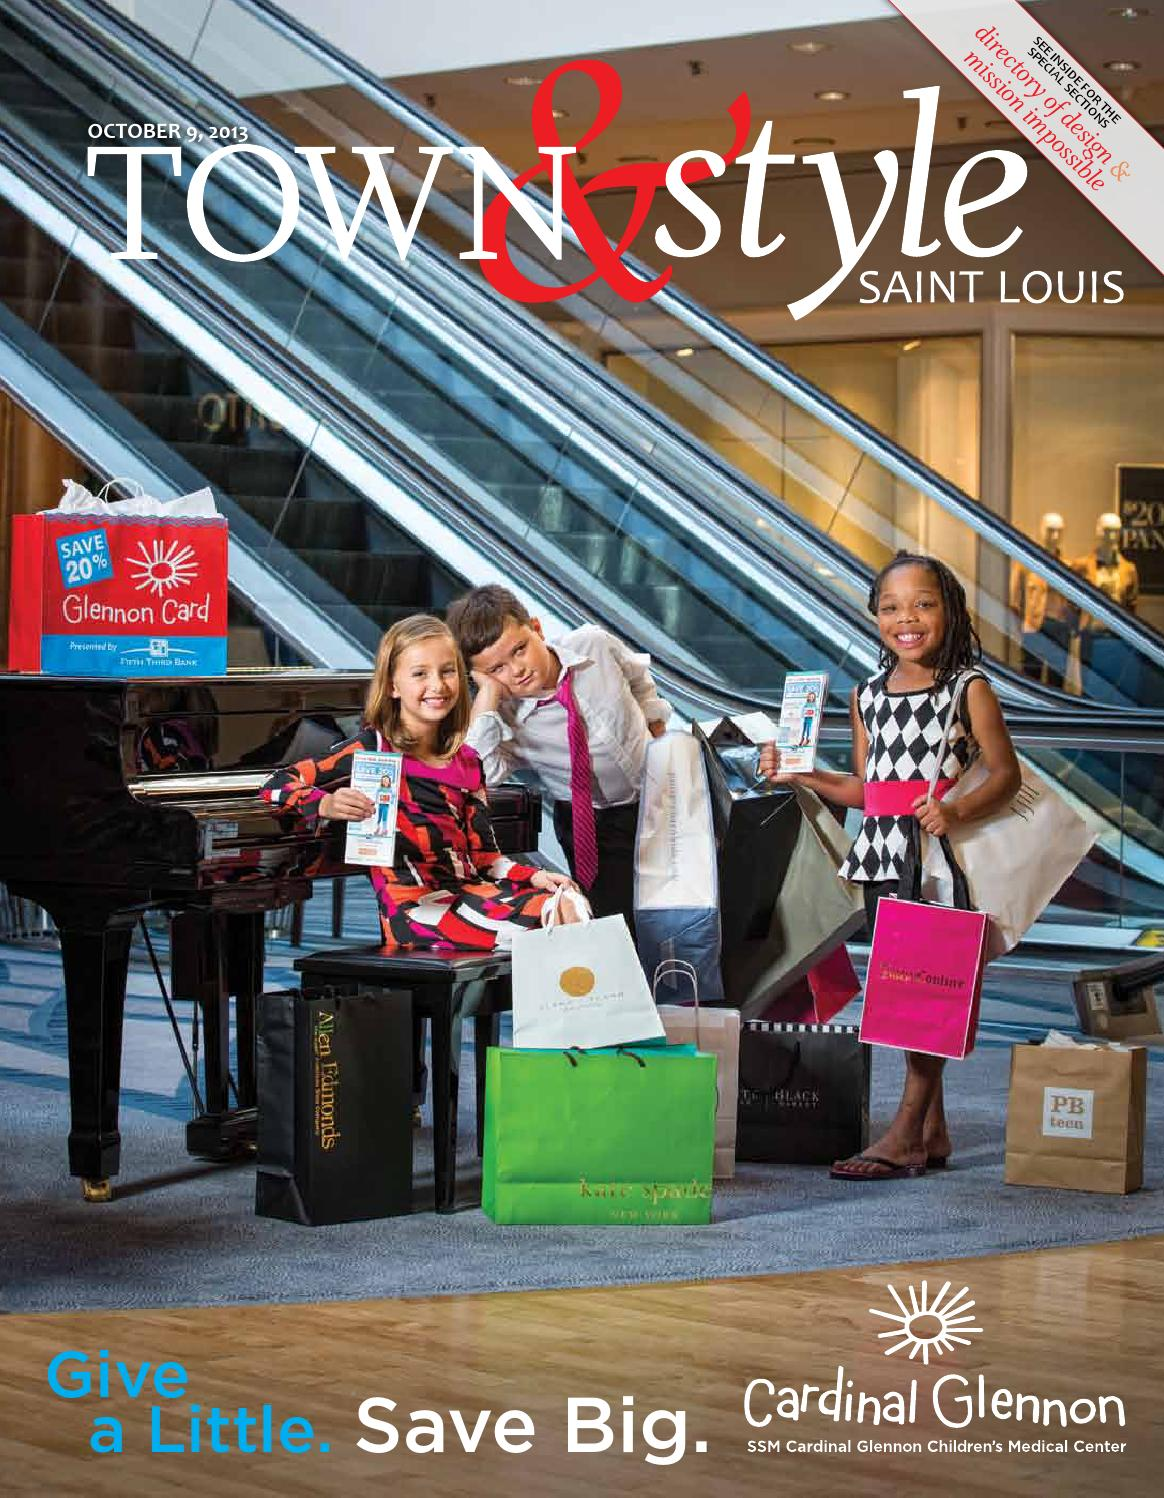 sc 1 st  Issuu & Townu0026Style St.Louis 10.09.13 by St. Louis Town u0026 Style - issuu